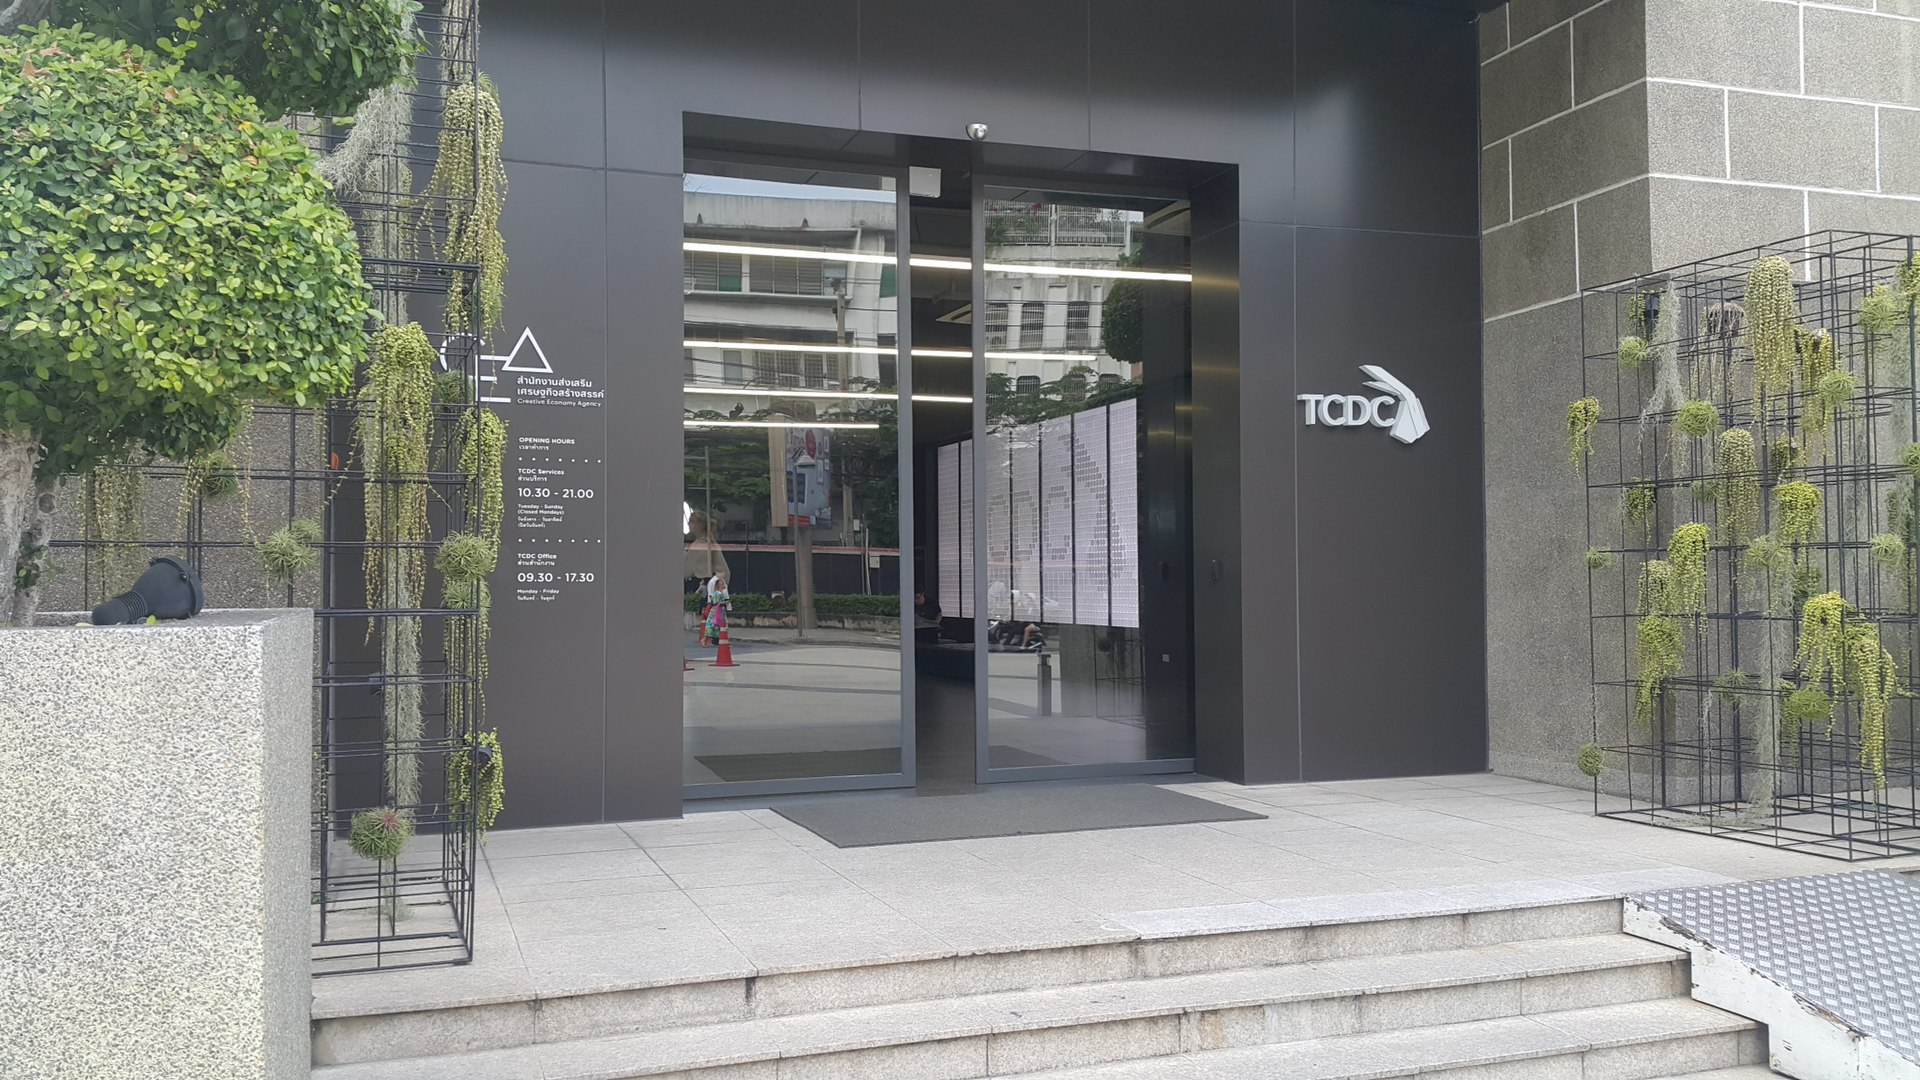 Thailand Creative and Design Centre tcdc front.jpg